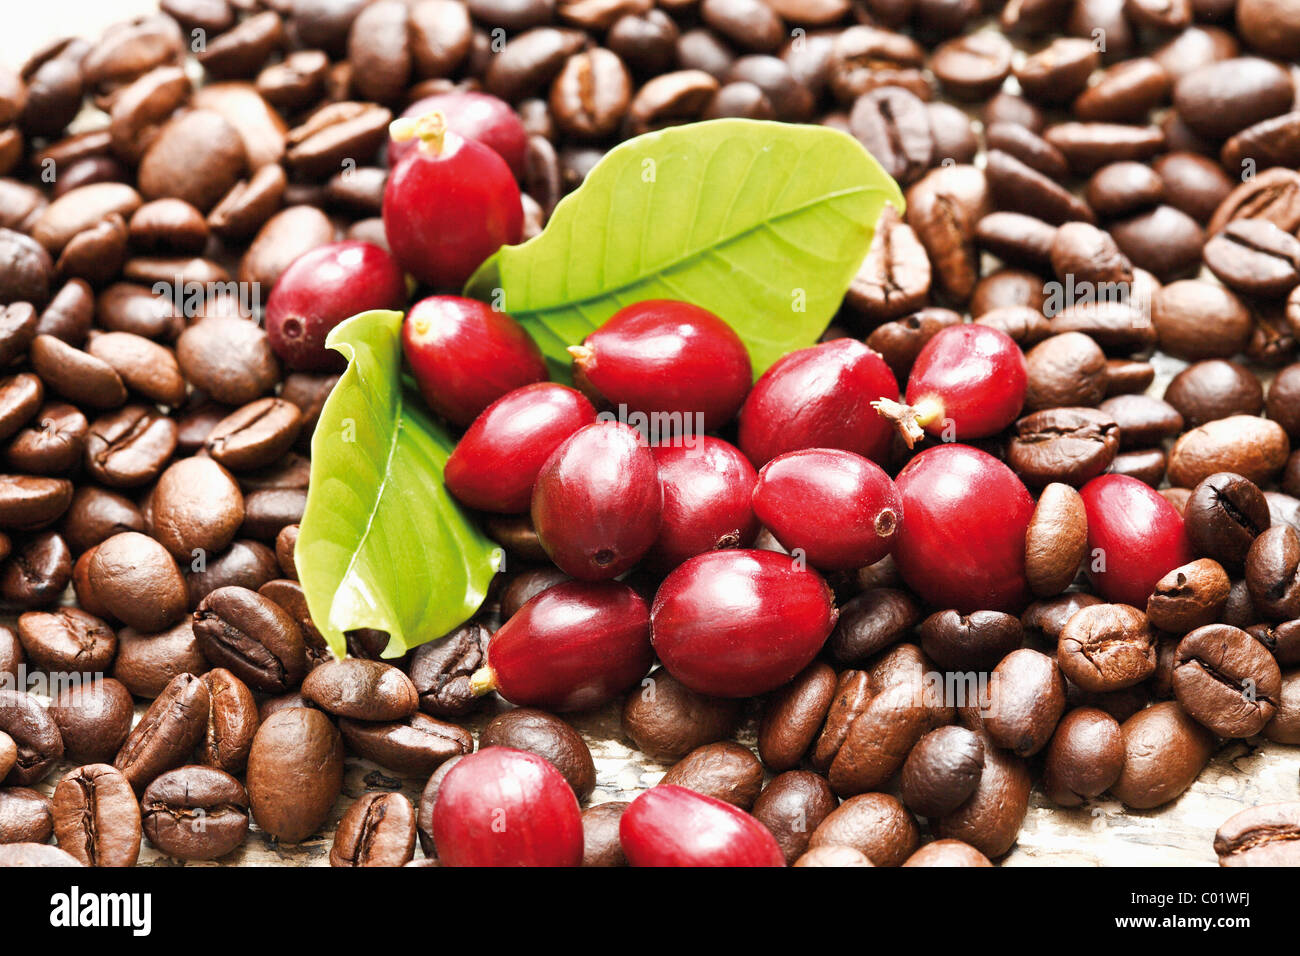 Coffee Arabica Coffee Bean Red Coffee Berries Coffea Arabica On A Bed Of Coffee